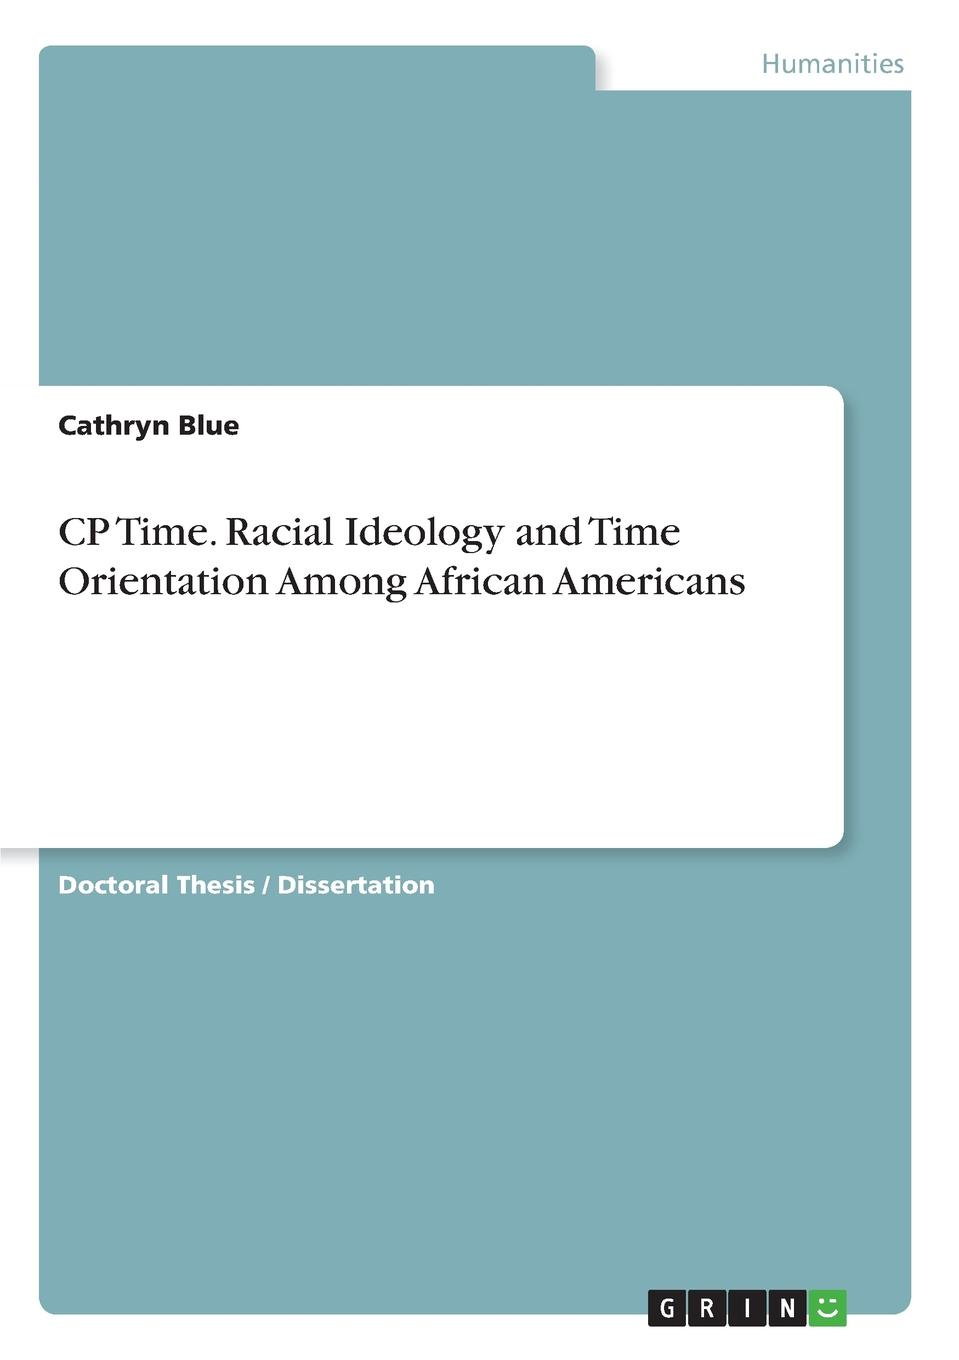 Cathryn Blue CP Time. Racial Ideology and Time Orientation Among African Americans